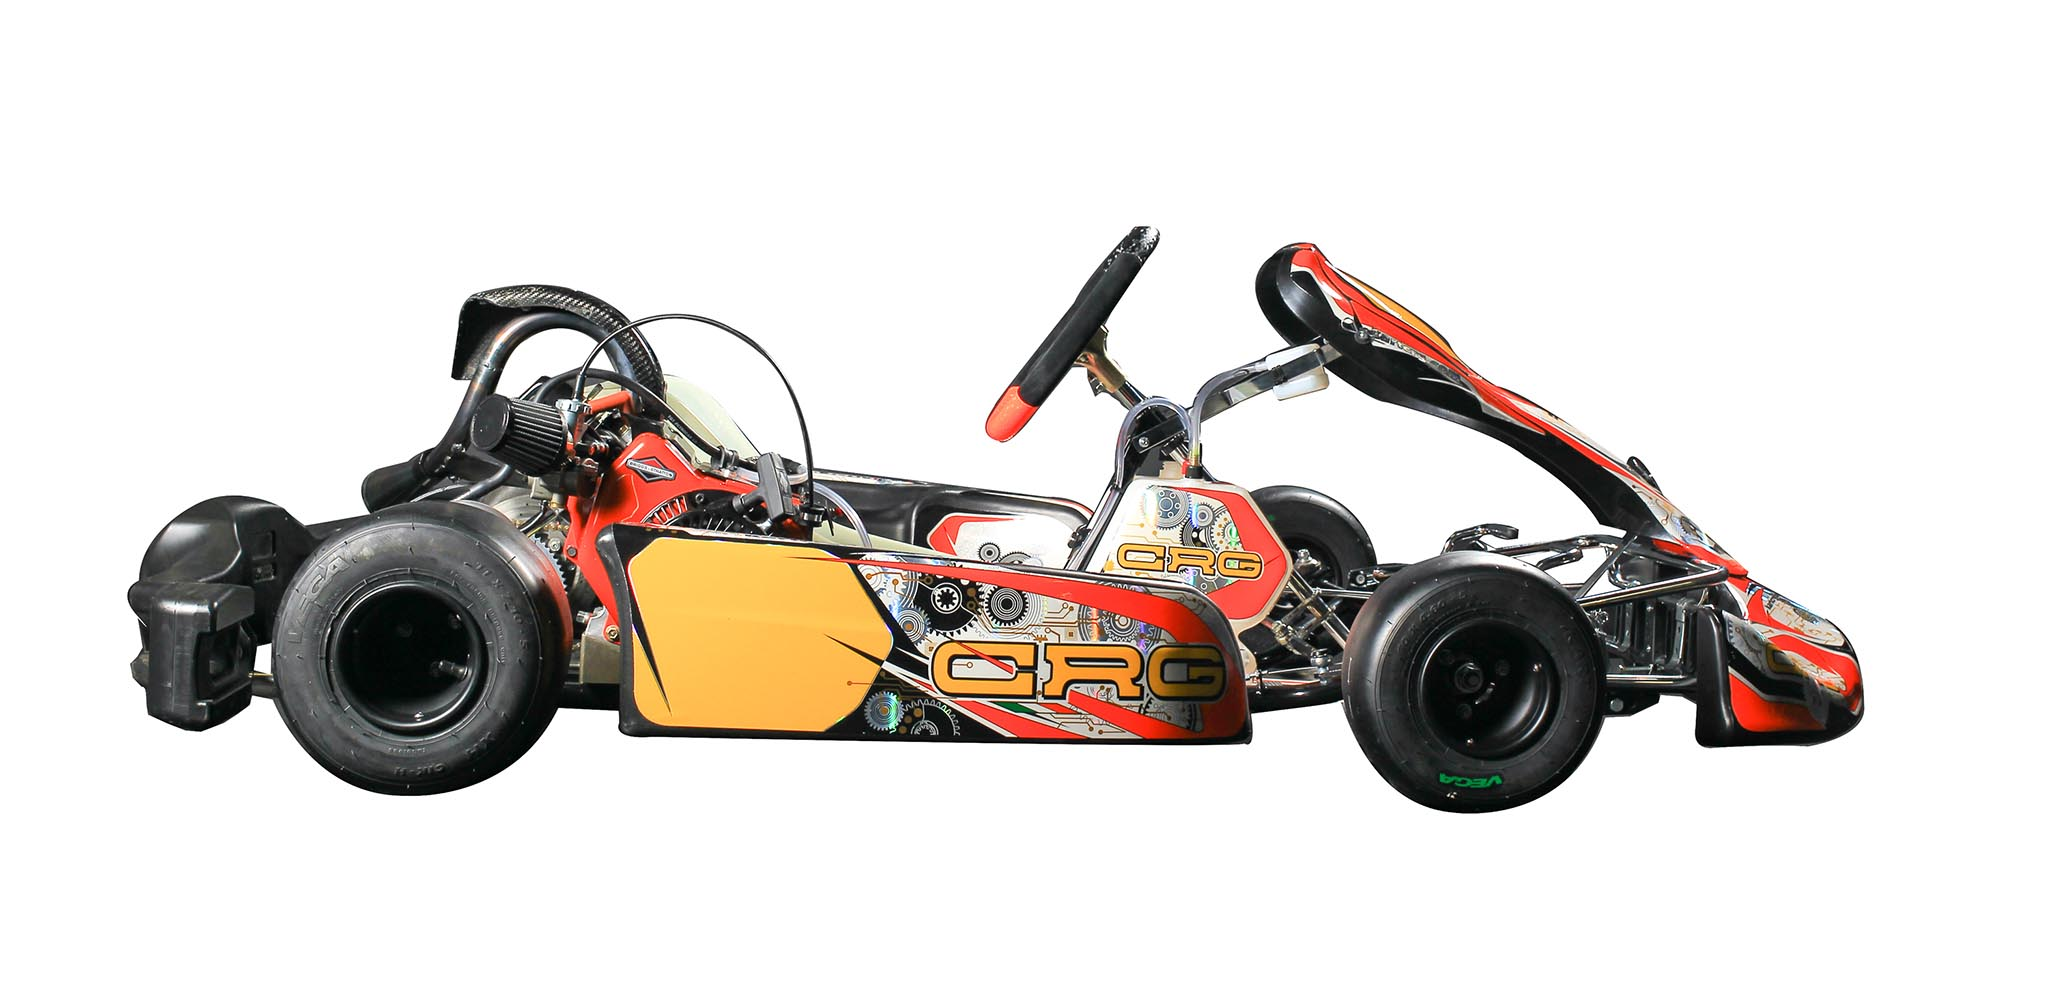 CRG chassis and Briggs & Stratton 4T egine: the kart that